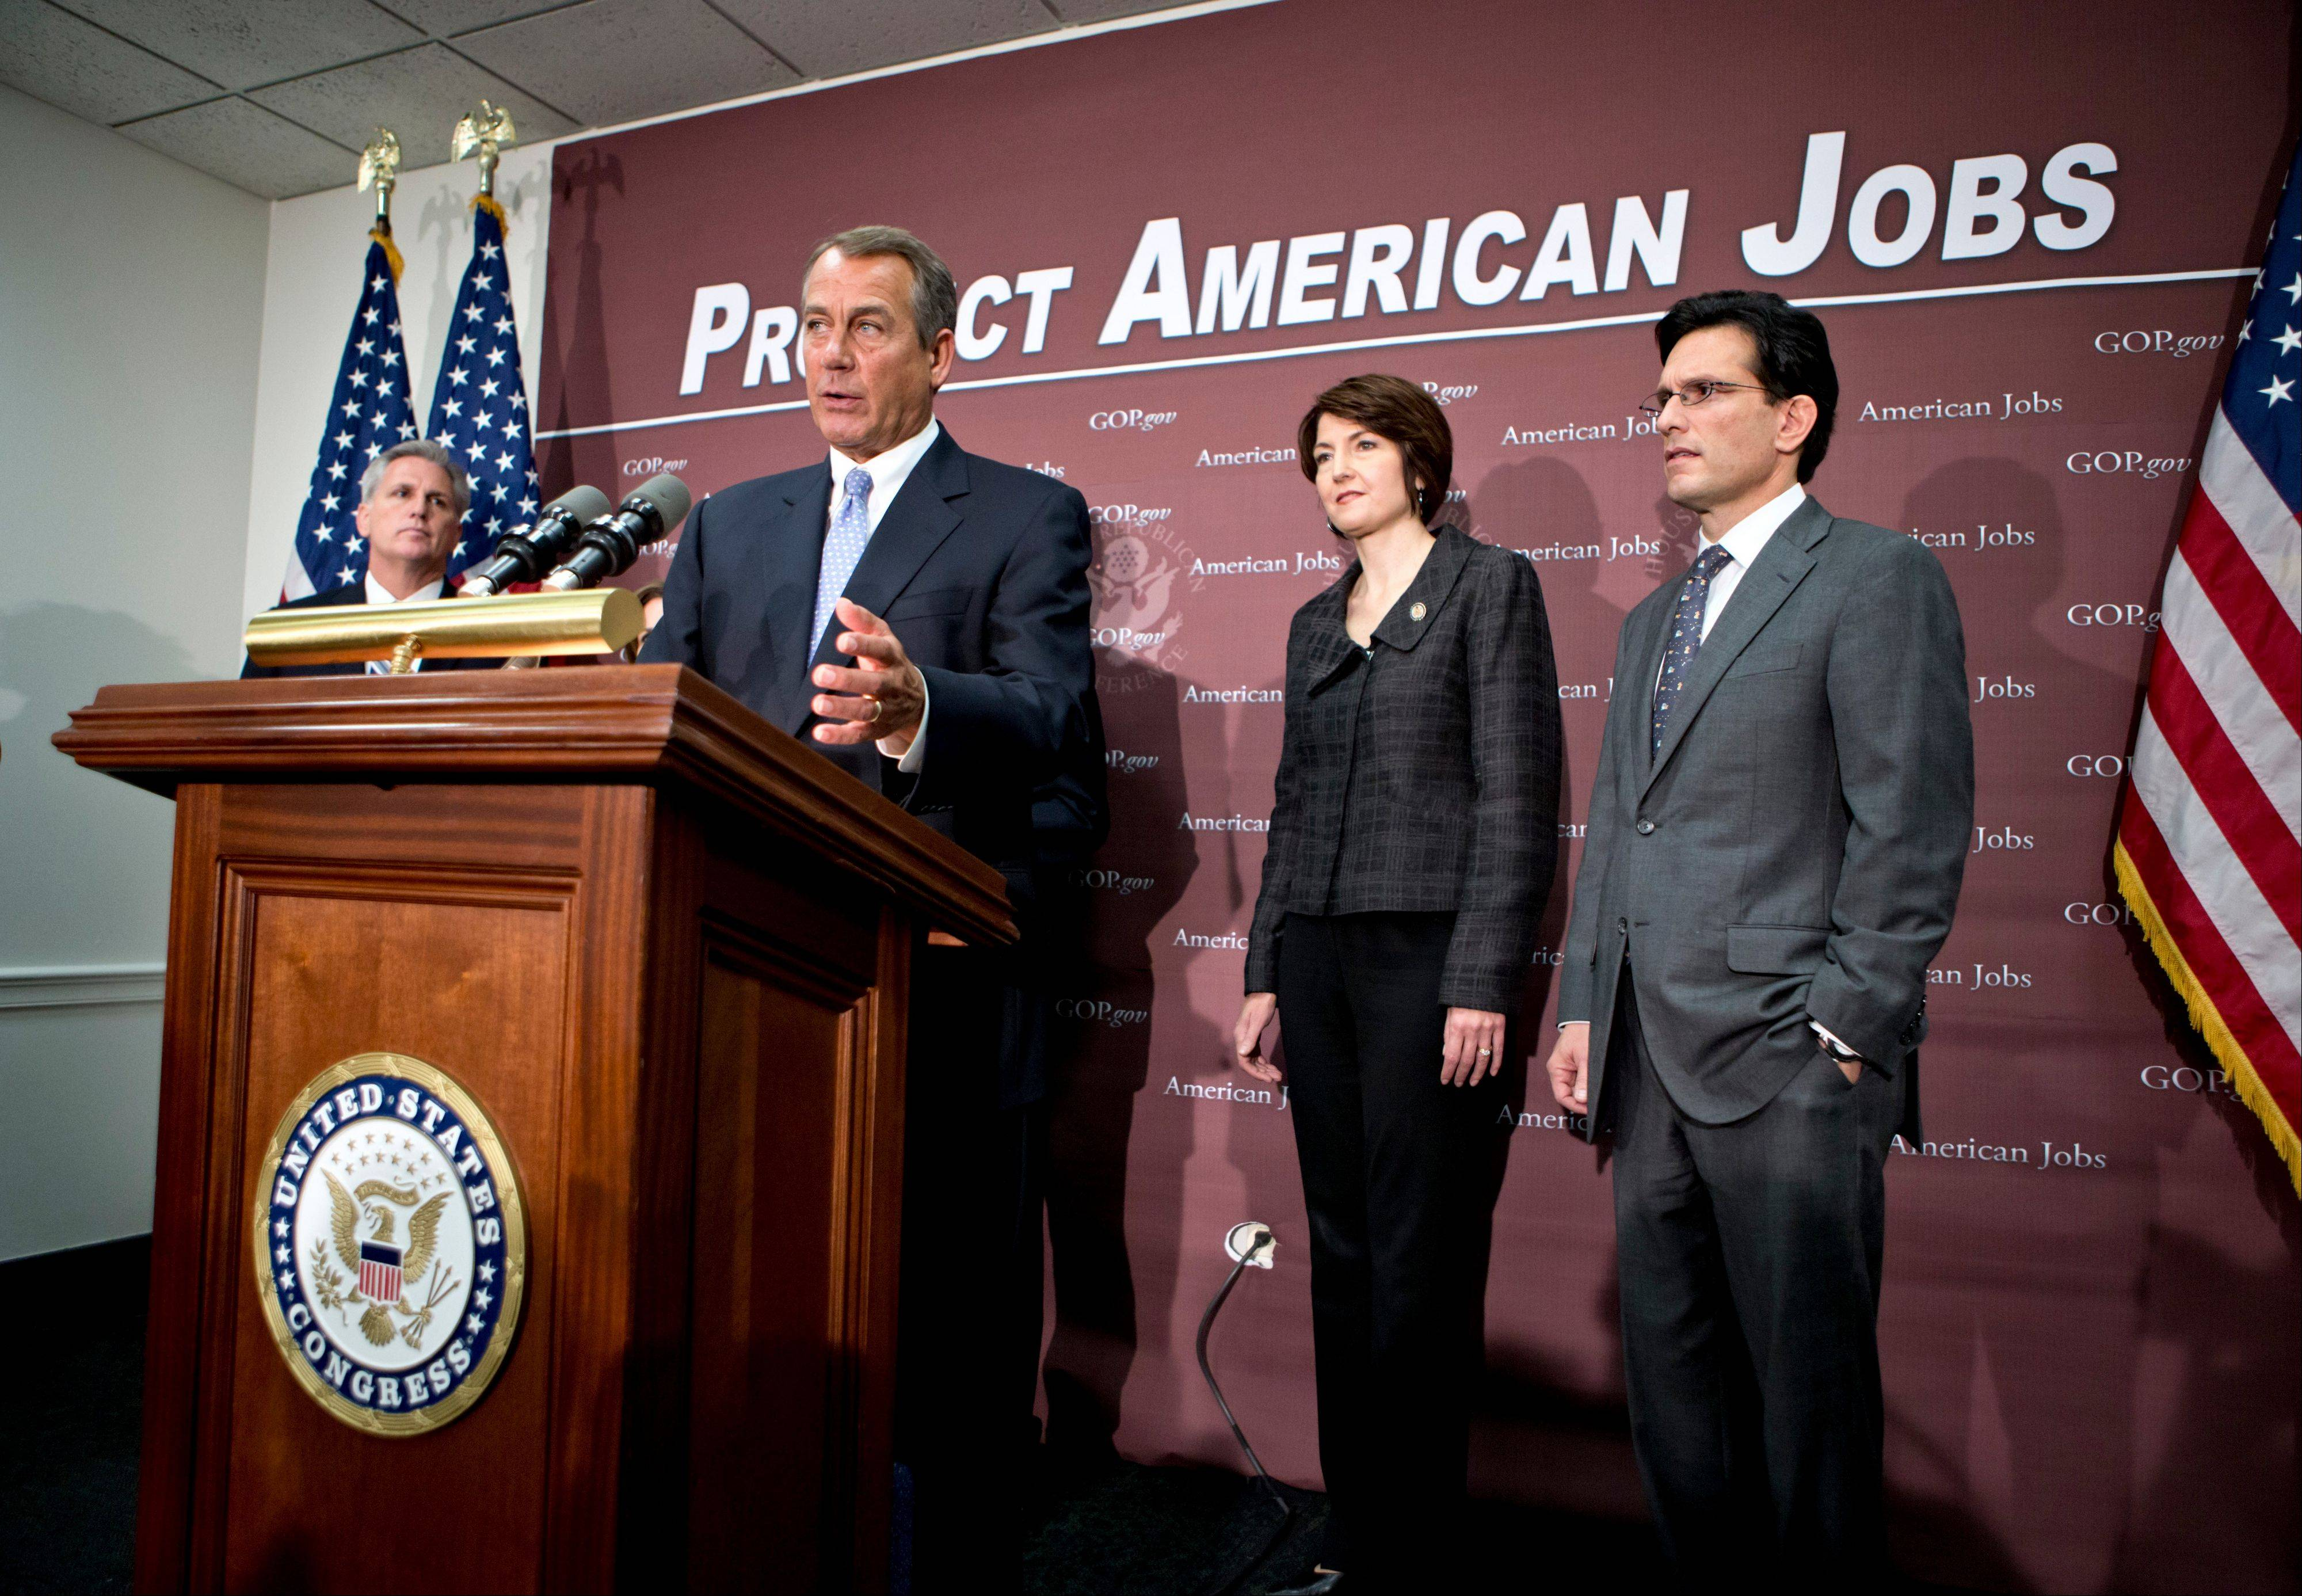 House Speaker John Boehner of Ohio, accompanied by the House GOP leadership, speaks to reporters on Capitol Hill Wednesday, following a closed-door GOP strategy session. From left are, House Majority Whip Kevin McCarthy of California, Boehner, Rep. Cathy McMorris Rodgers, a Washington Republican, and House Majority Leader Eric Cantor of Virginia.